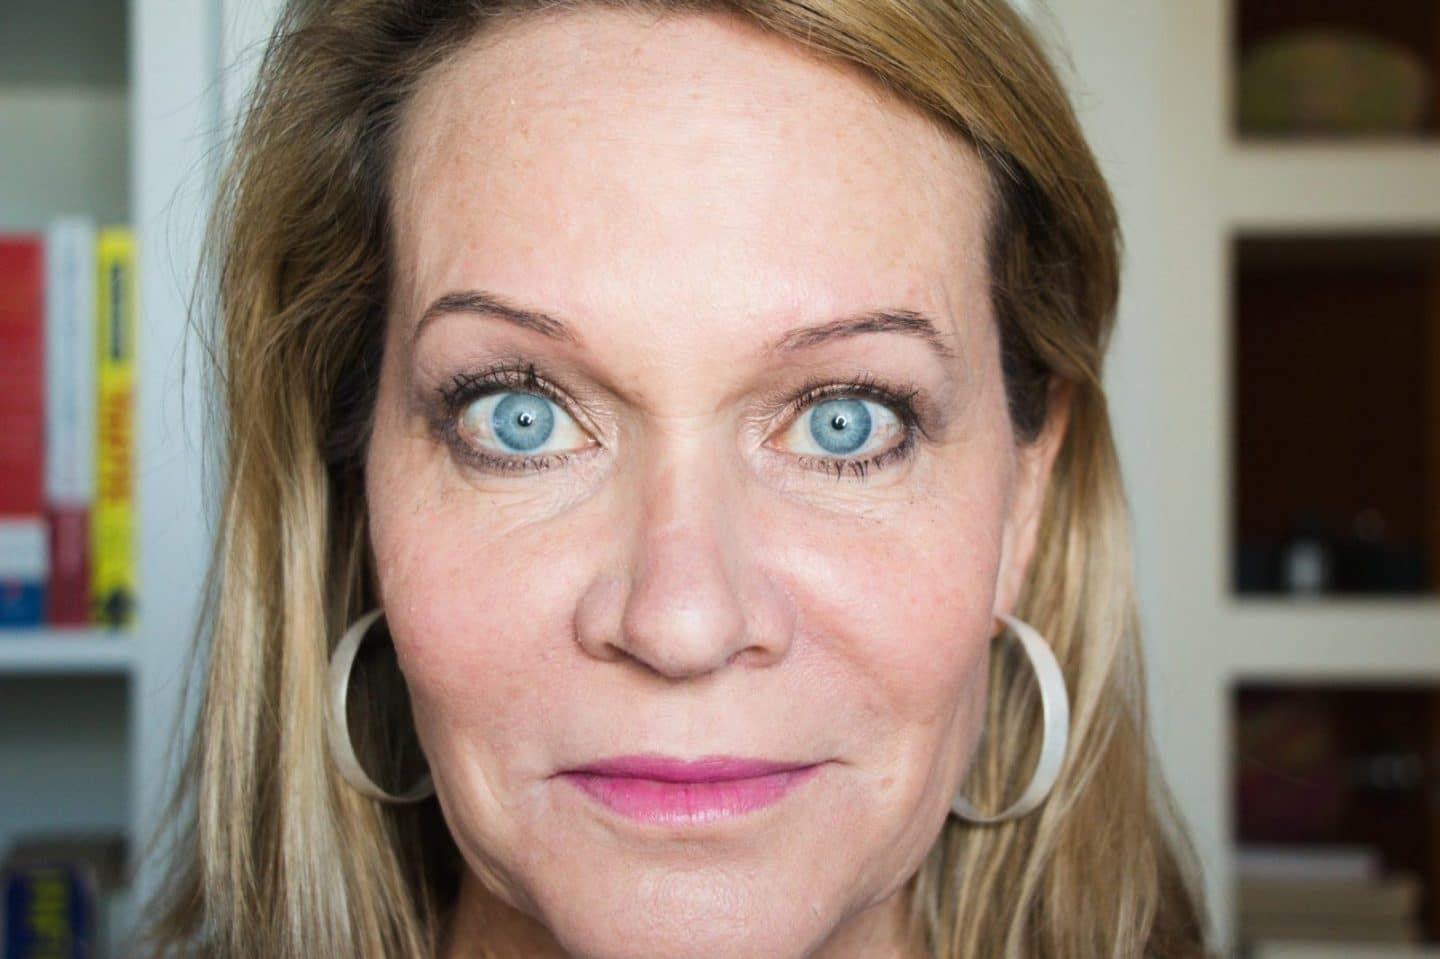 How to Make Your Thinning, Over-Plucked Aging Eyebrows Look Lush and Full 2